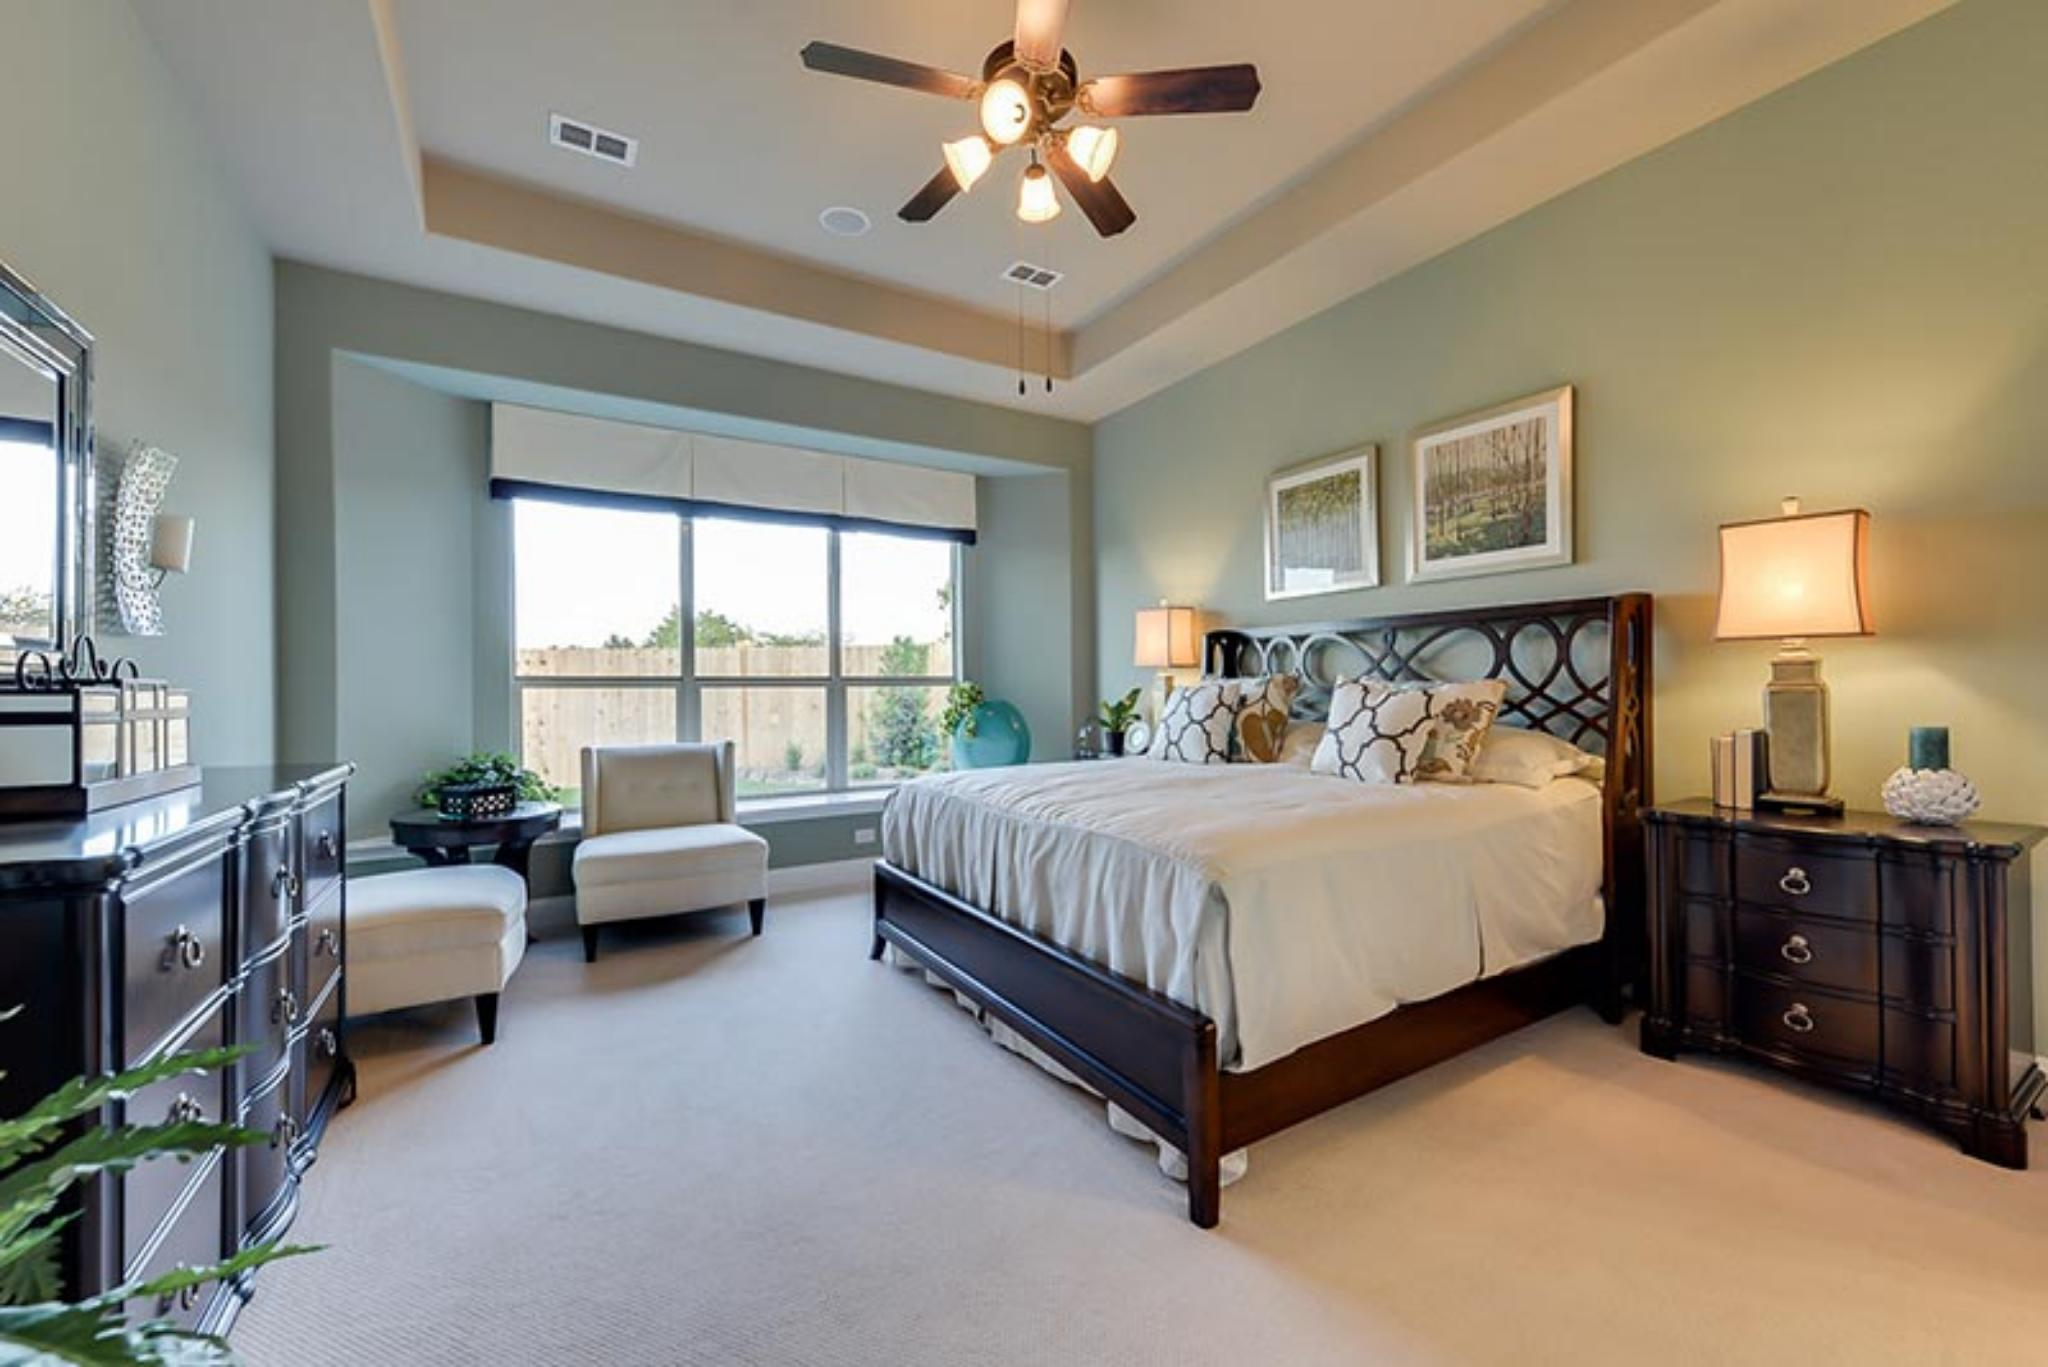 Bedroom featured in the Annabelle By Trendmaker Homes in Fort Worth, TX